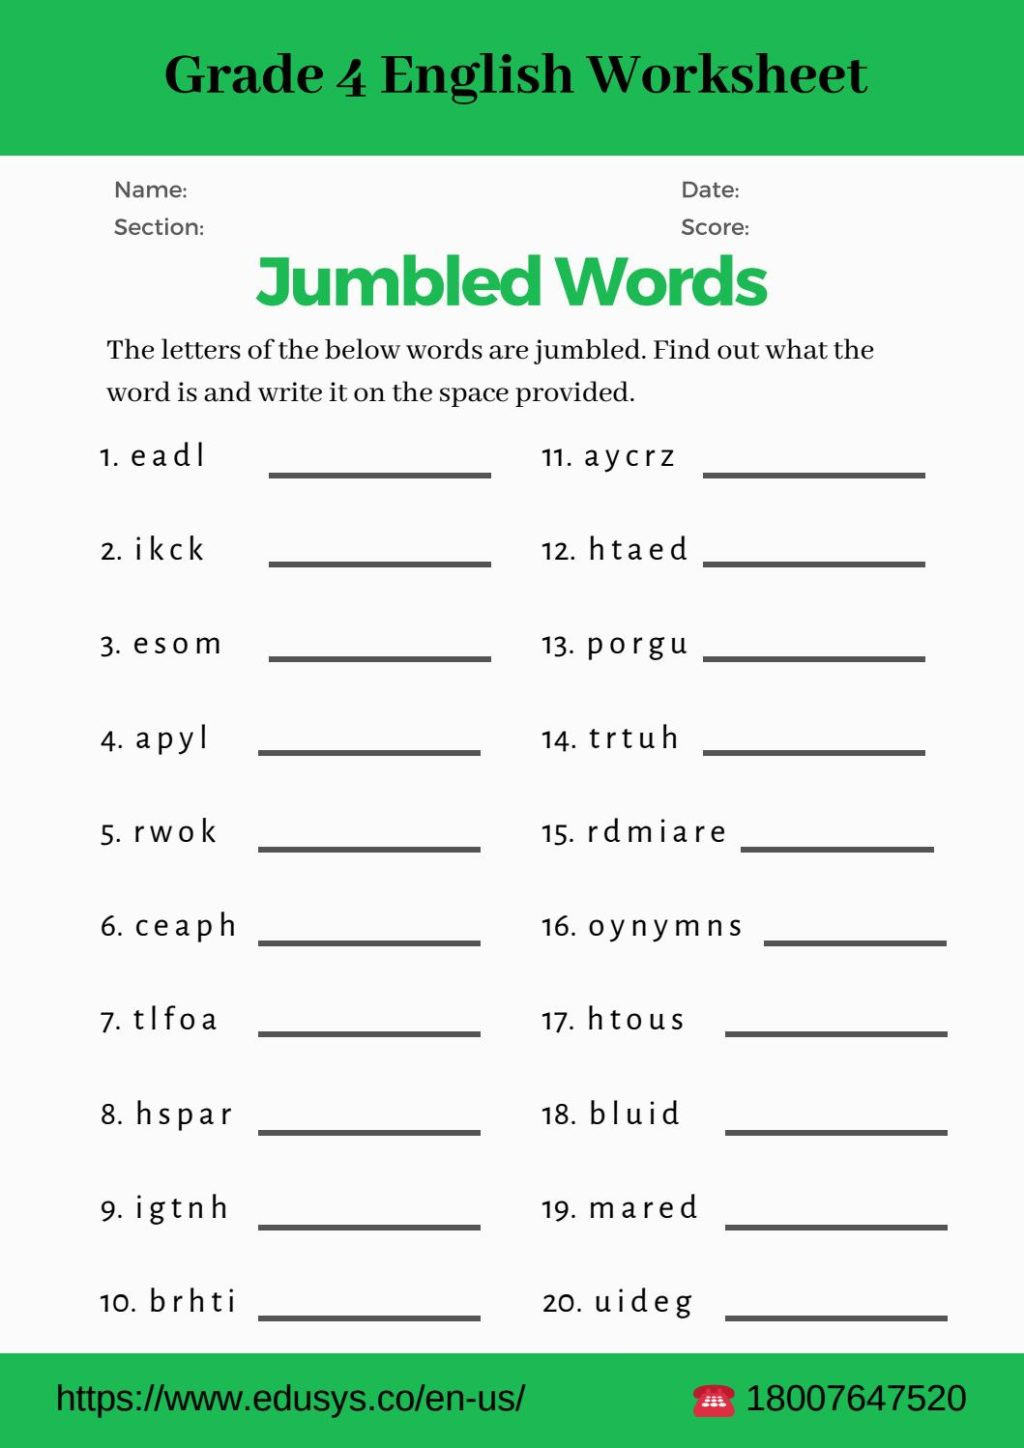 Multiplication Worksheets Grade 4 Pdf Worksheet Worksheet 4th Grade English Vocabulary Pdf by